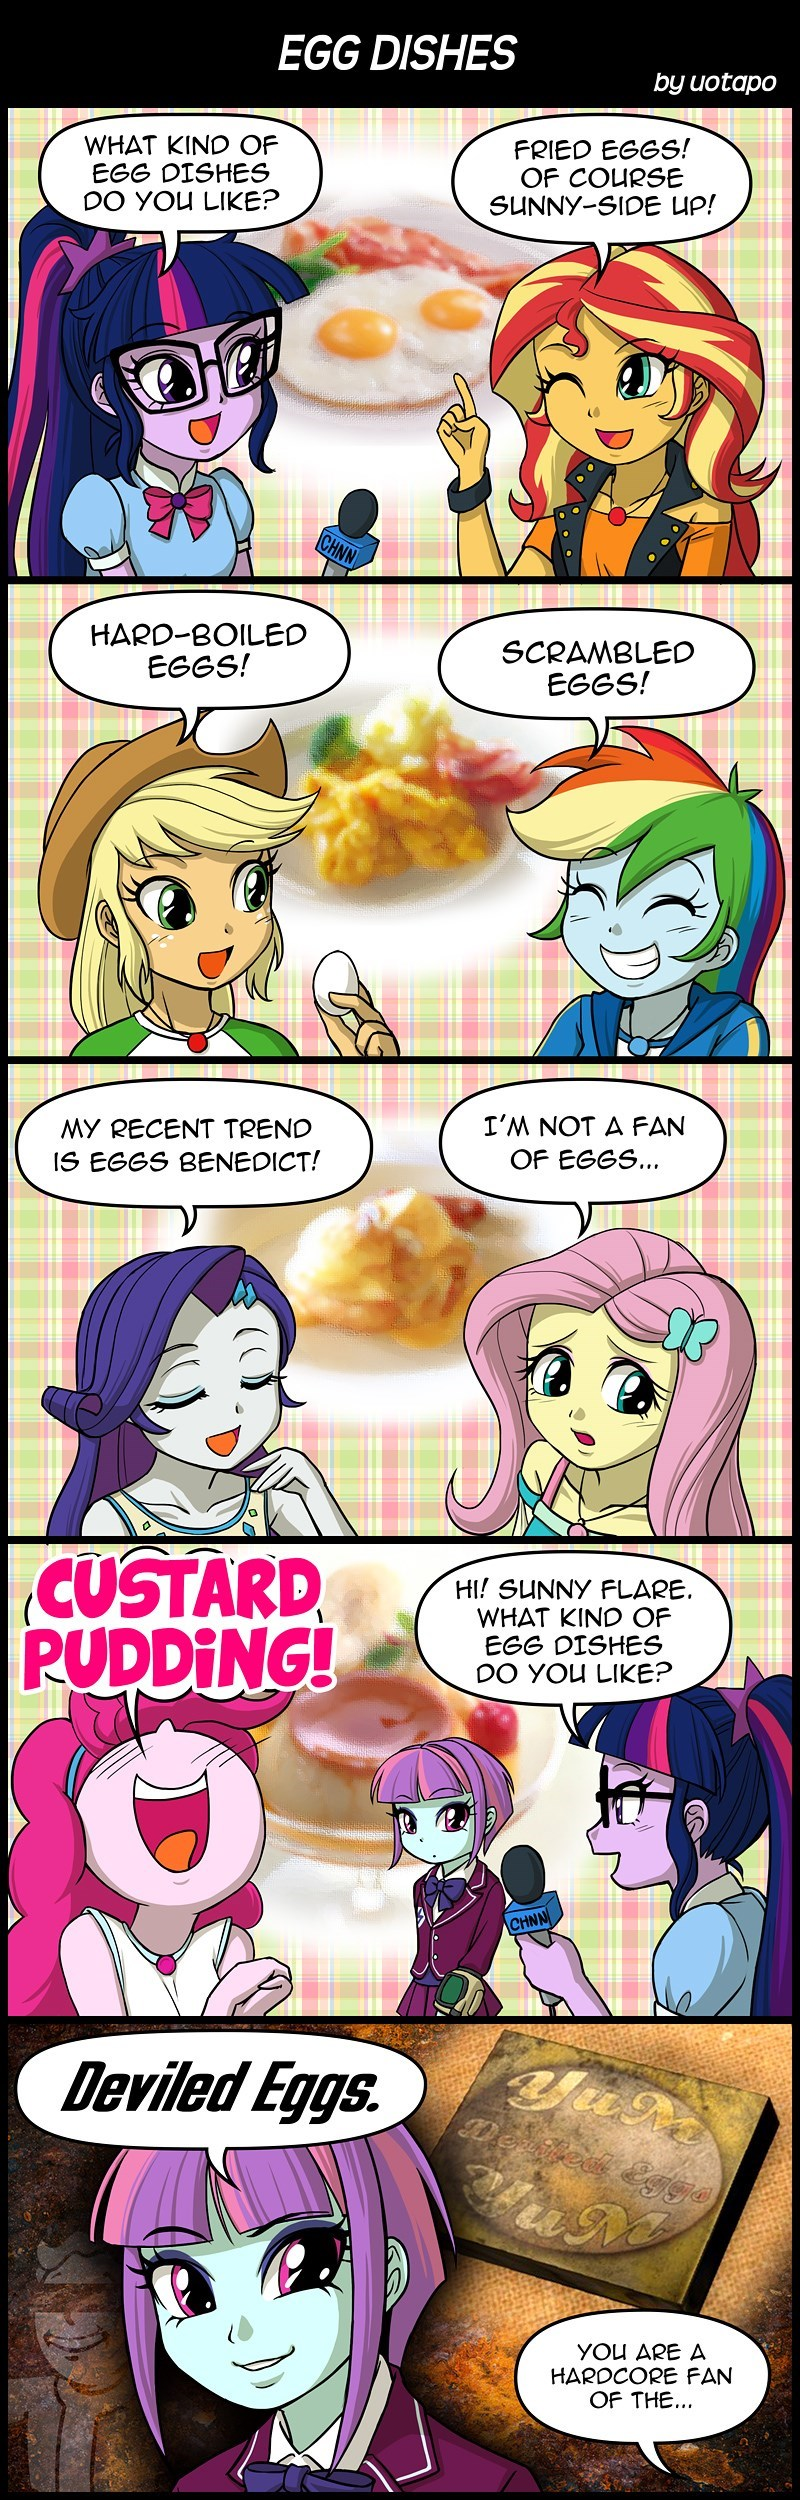 applejack equestria girls scitwi fallout twilight sparkle pinkie pie uotapo sunny flare rarity comic sunset shimmer fluttershy rainbow dash - 9099428608